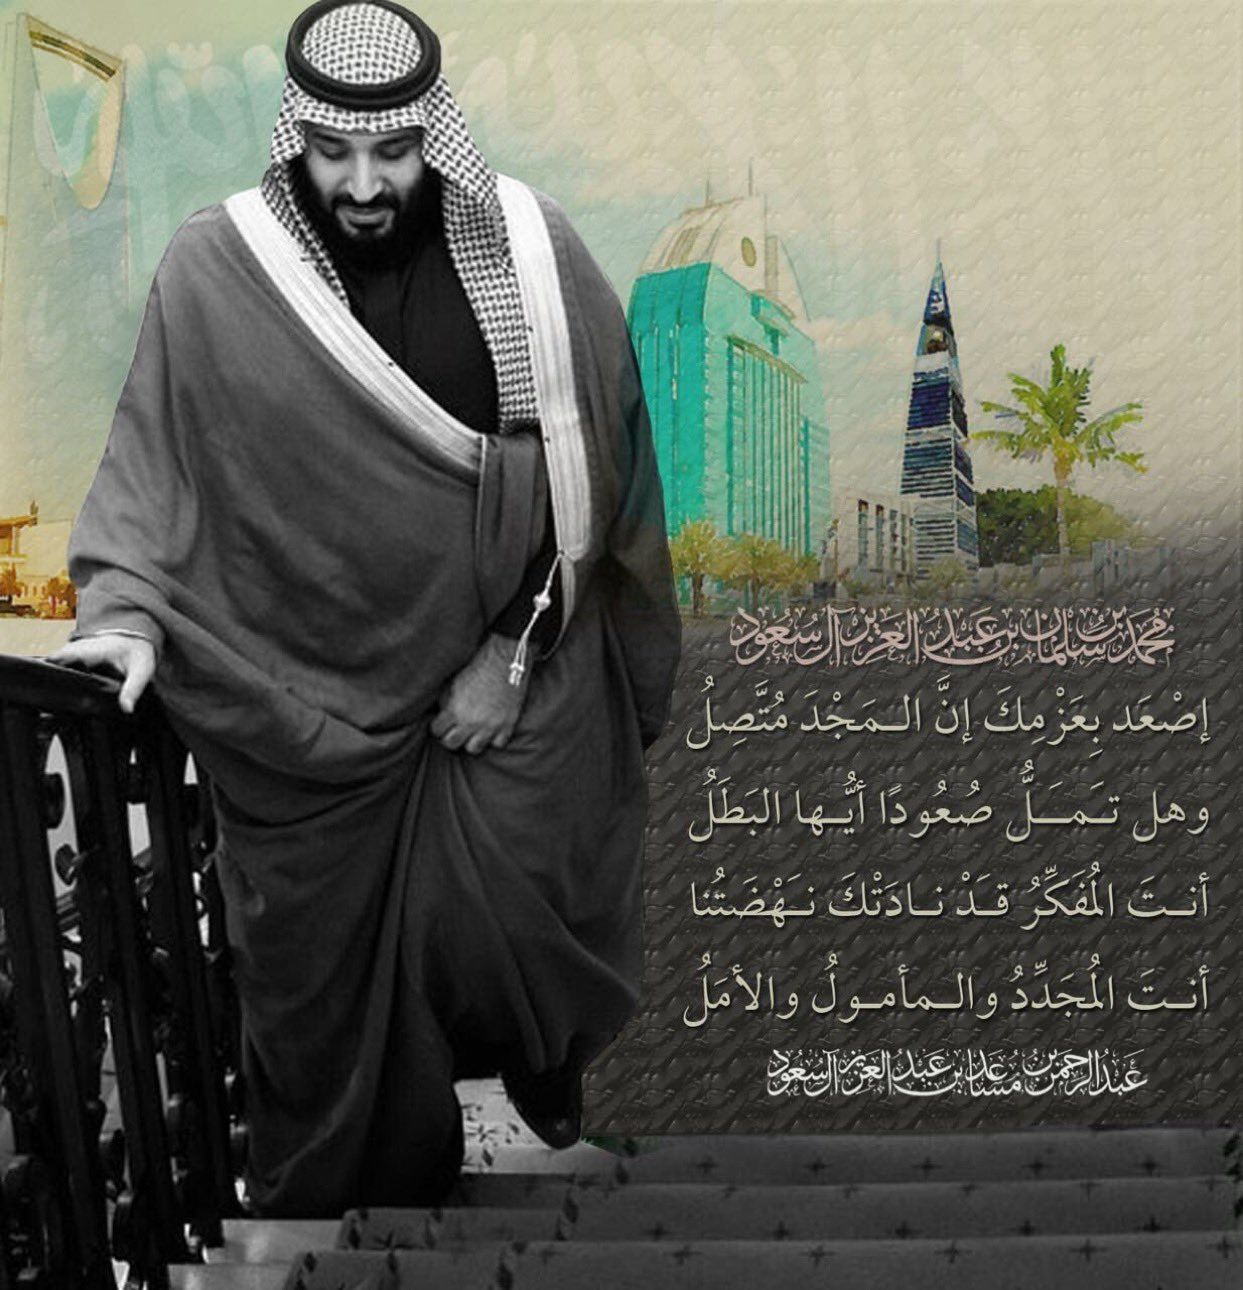 Pin By Albdr On دام عزك ياوطن Saudi Flag Photography Inspiration Portrait Borders For Paper